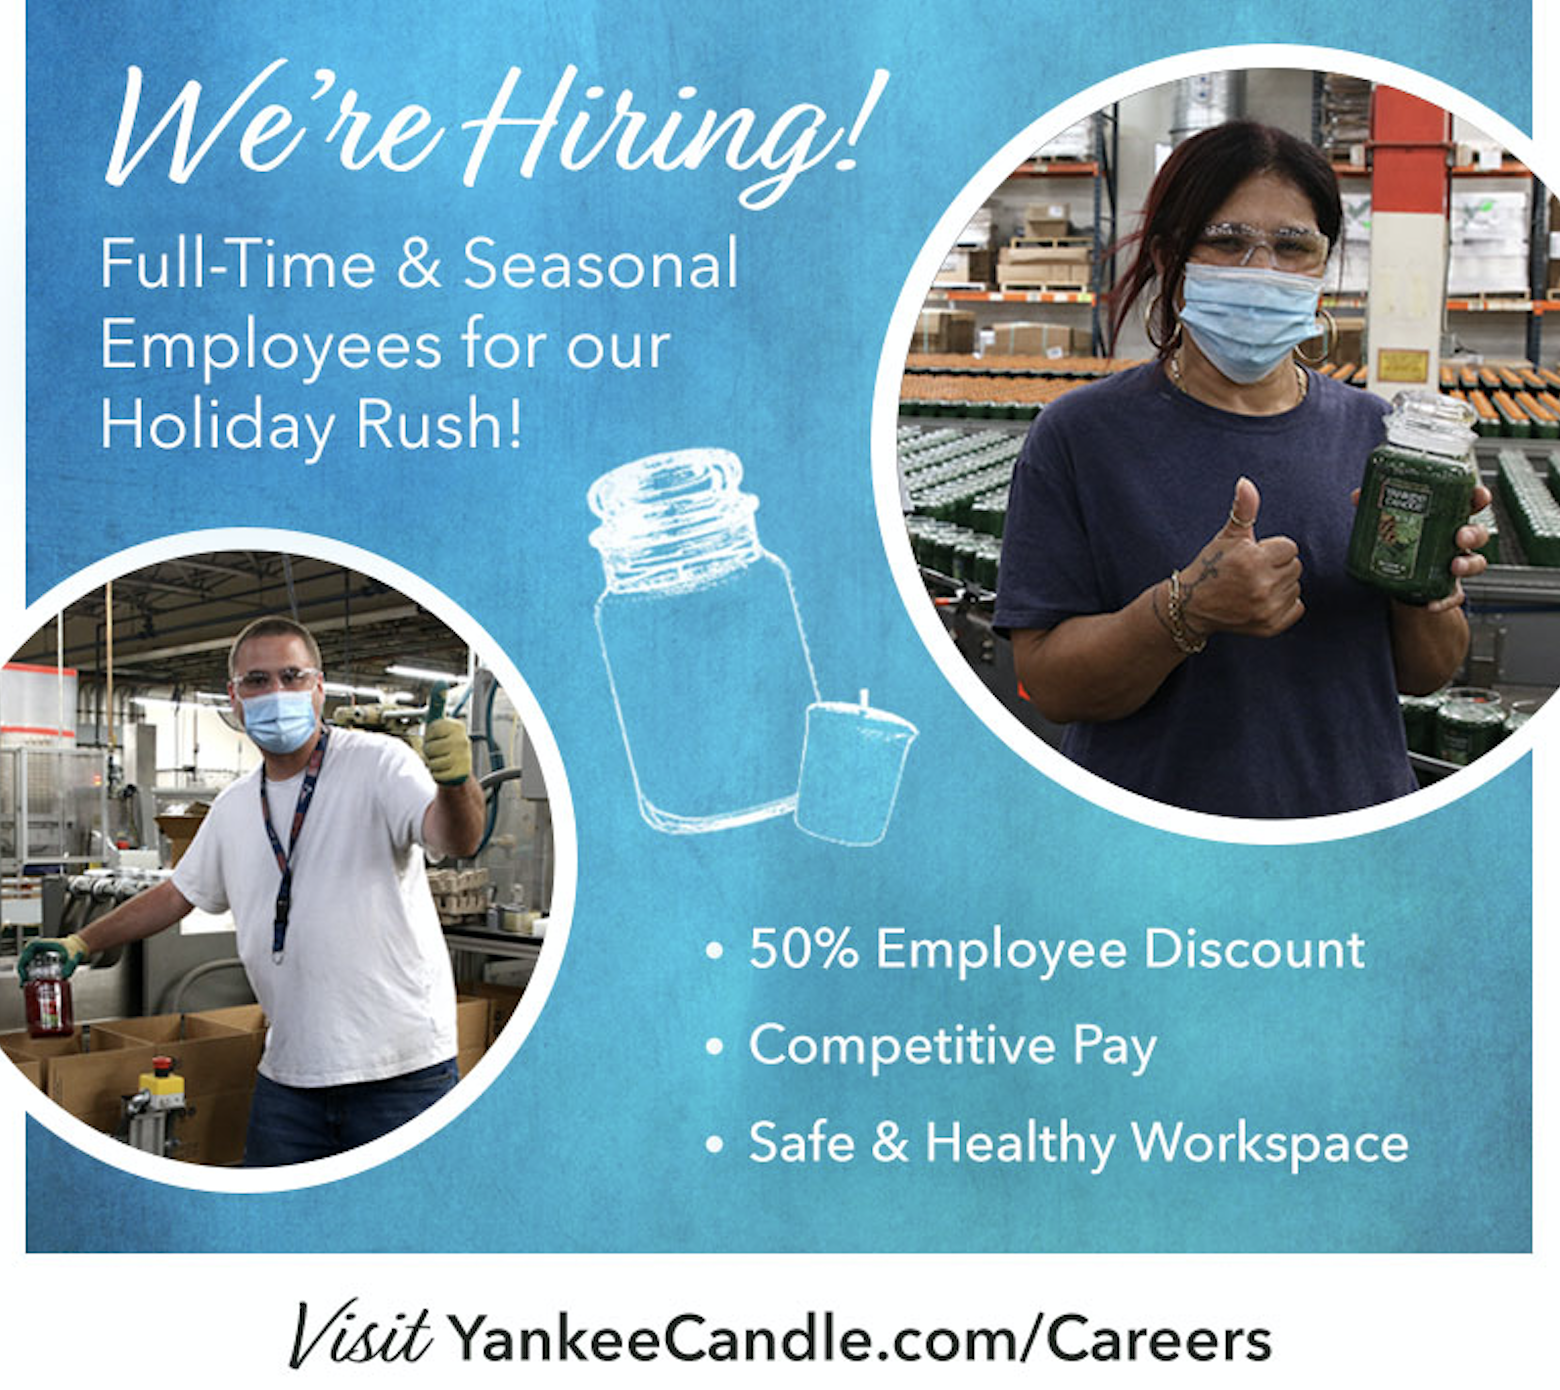 Yankee Candle is Hiring for Seasonal Jobs!